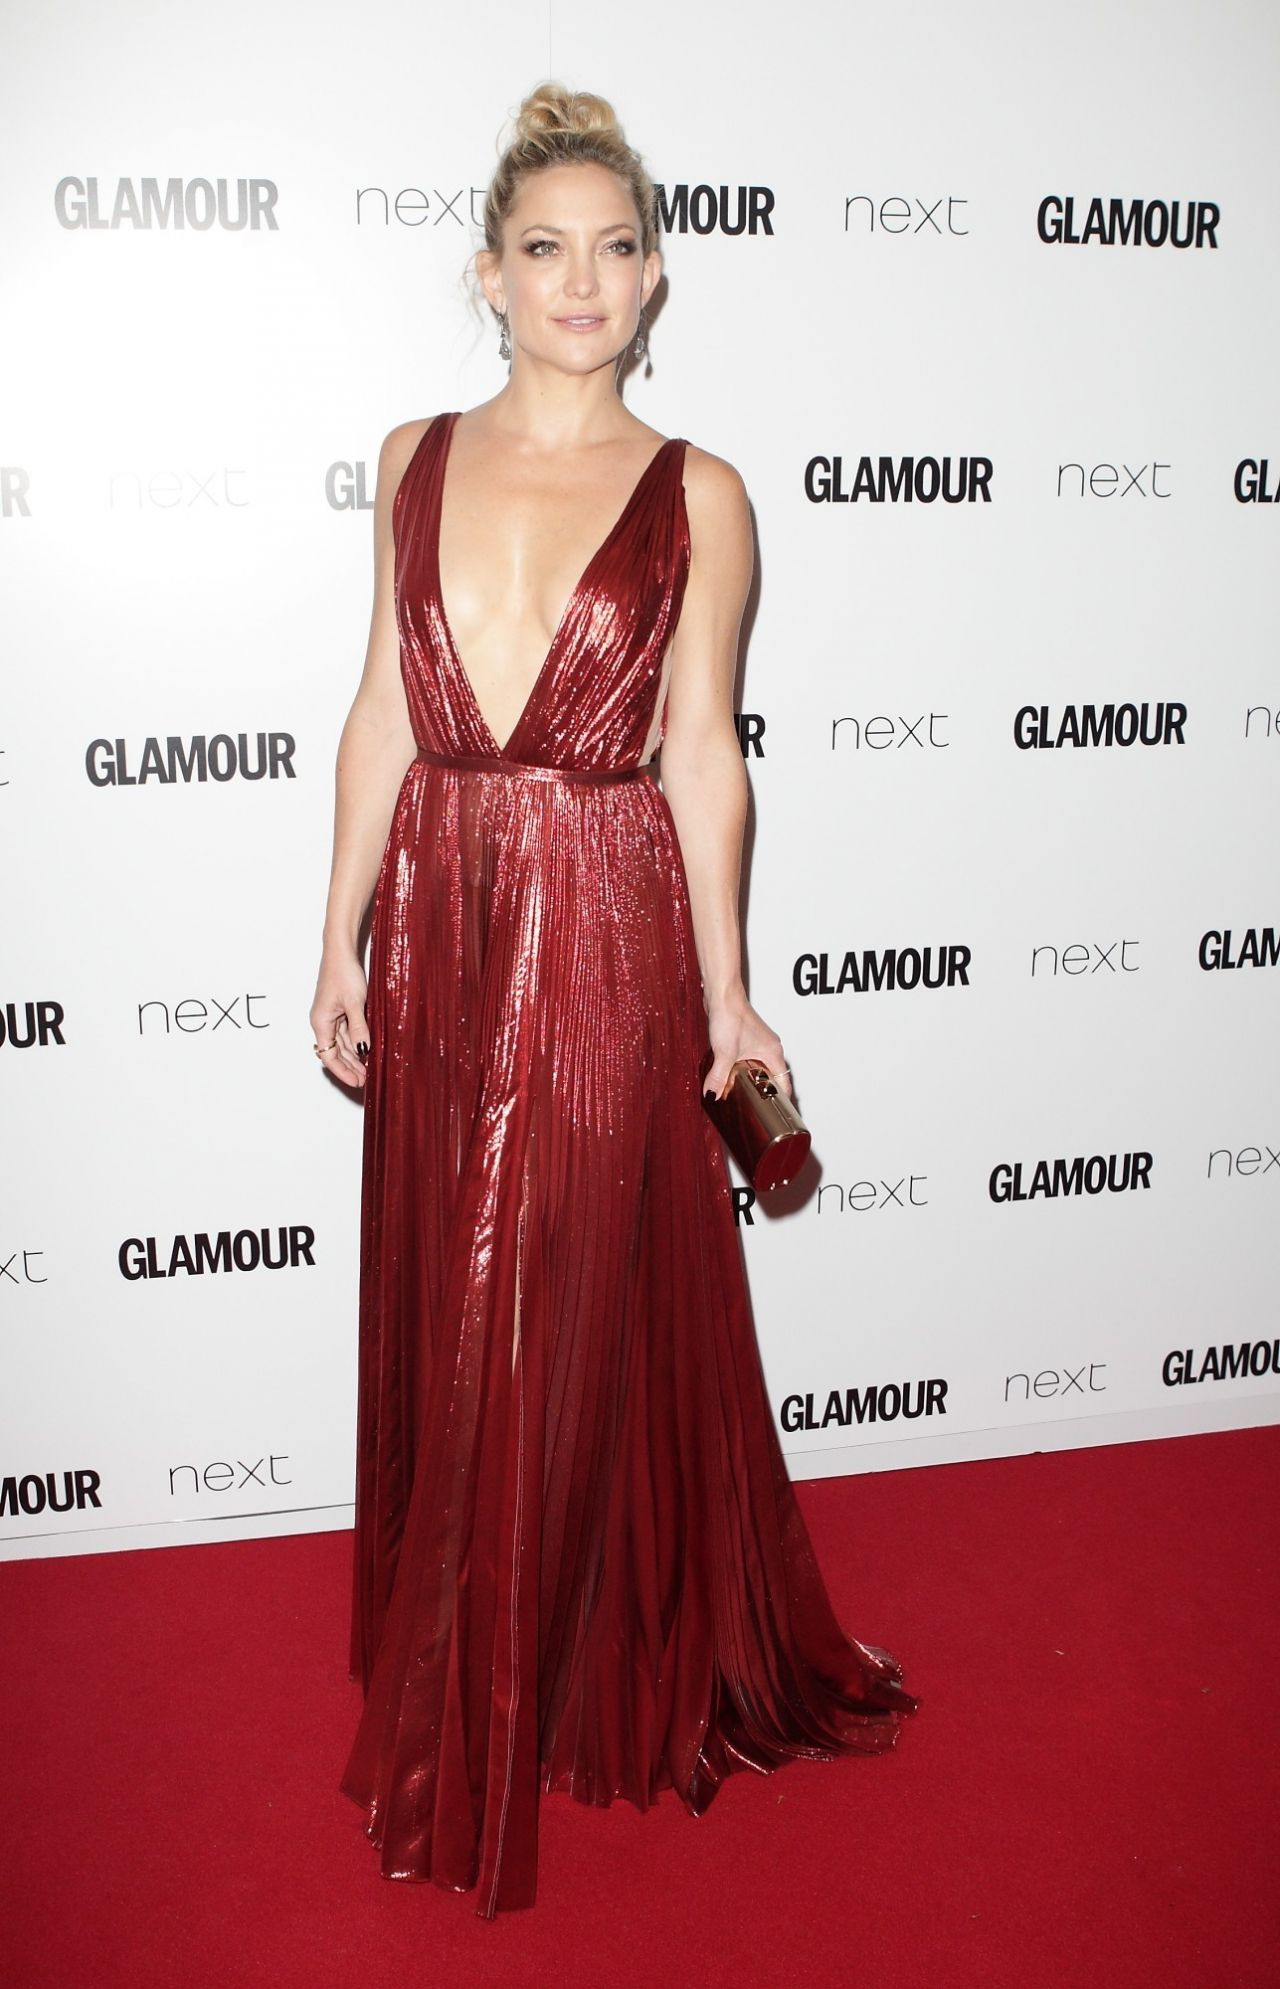 kate-hudson-2015-glamour-women-of-the-year-awards-in-london_16